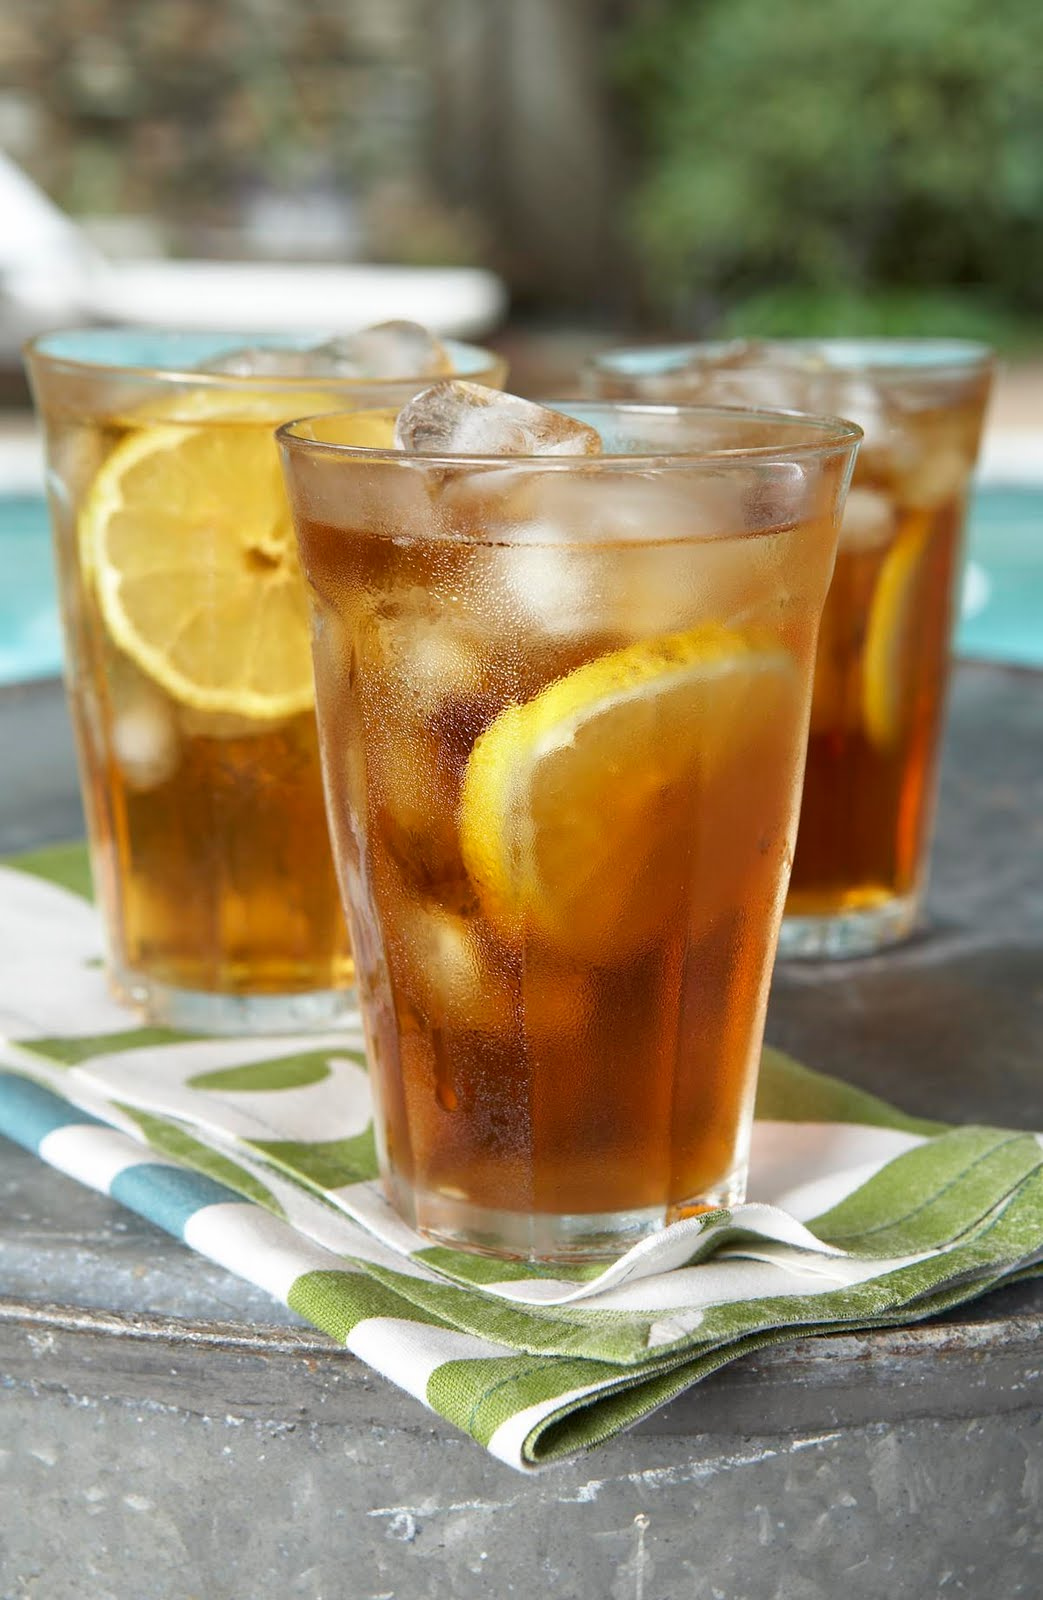 LisaKnowsTea: Celebrating Summer with Iced Tea